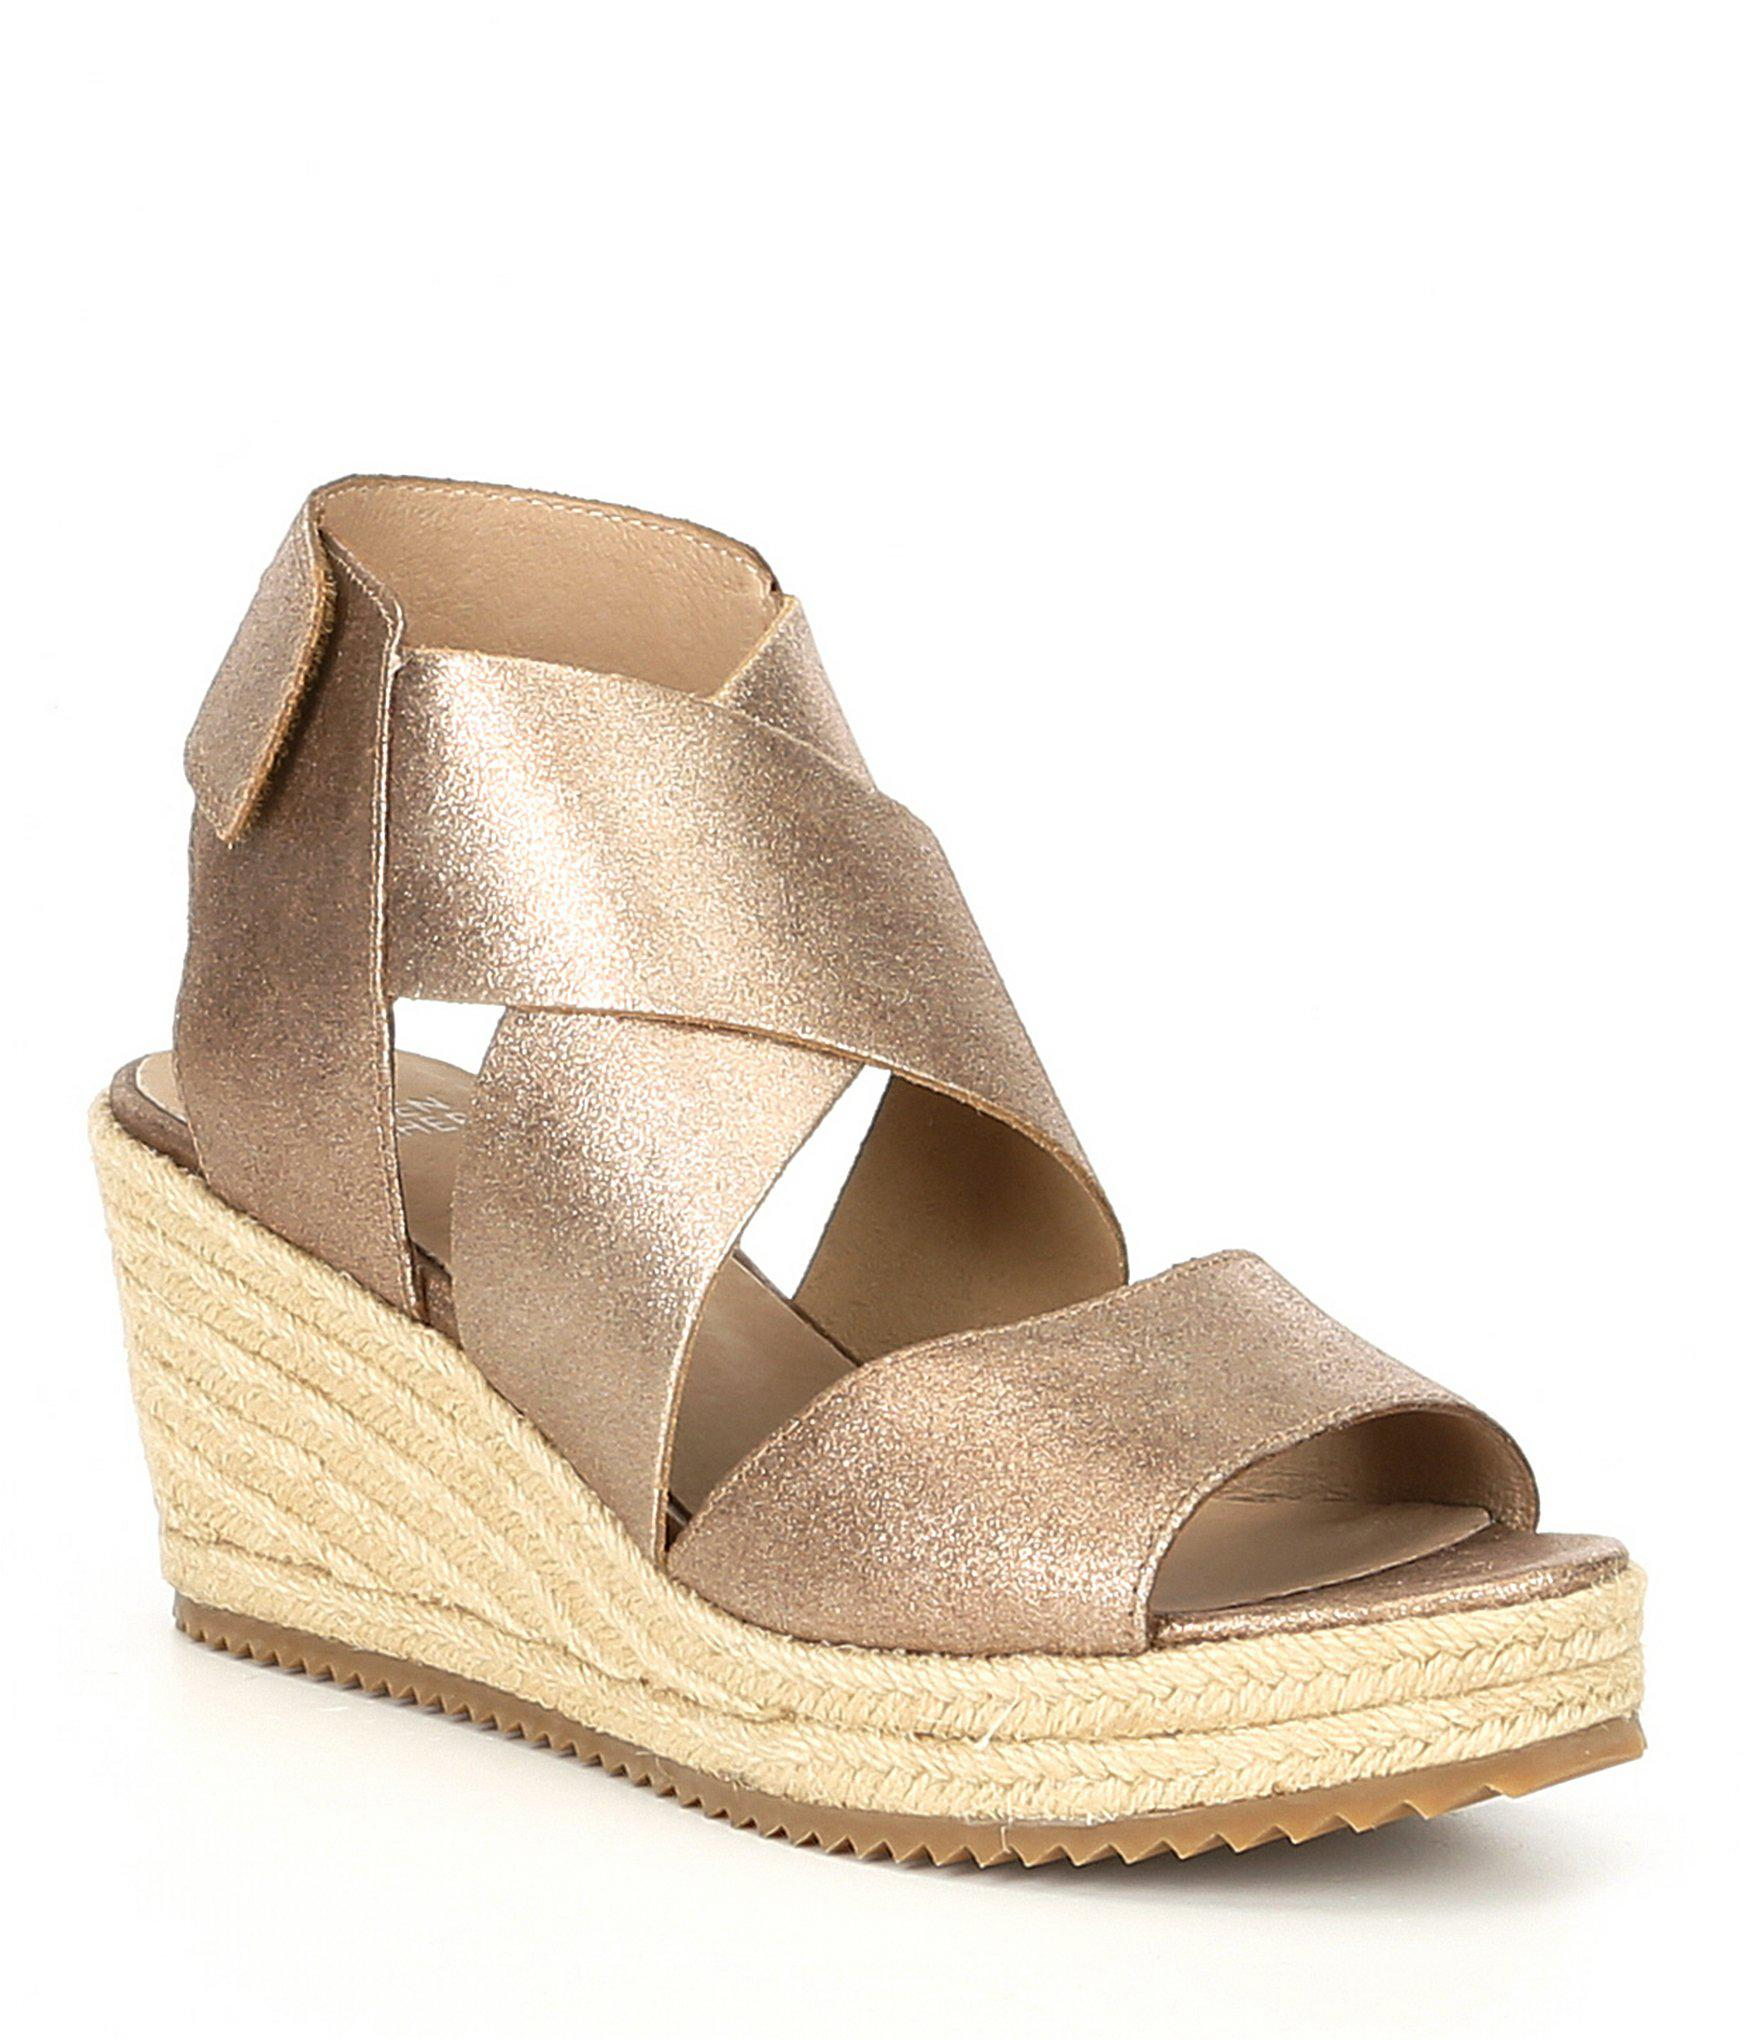 20644e3037f5 Lyst - Eileen Fisher Willow 3 Metallic Suede Wedge Espadrilles in ...